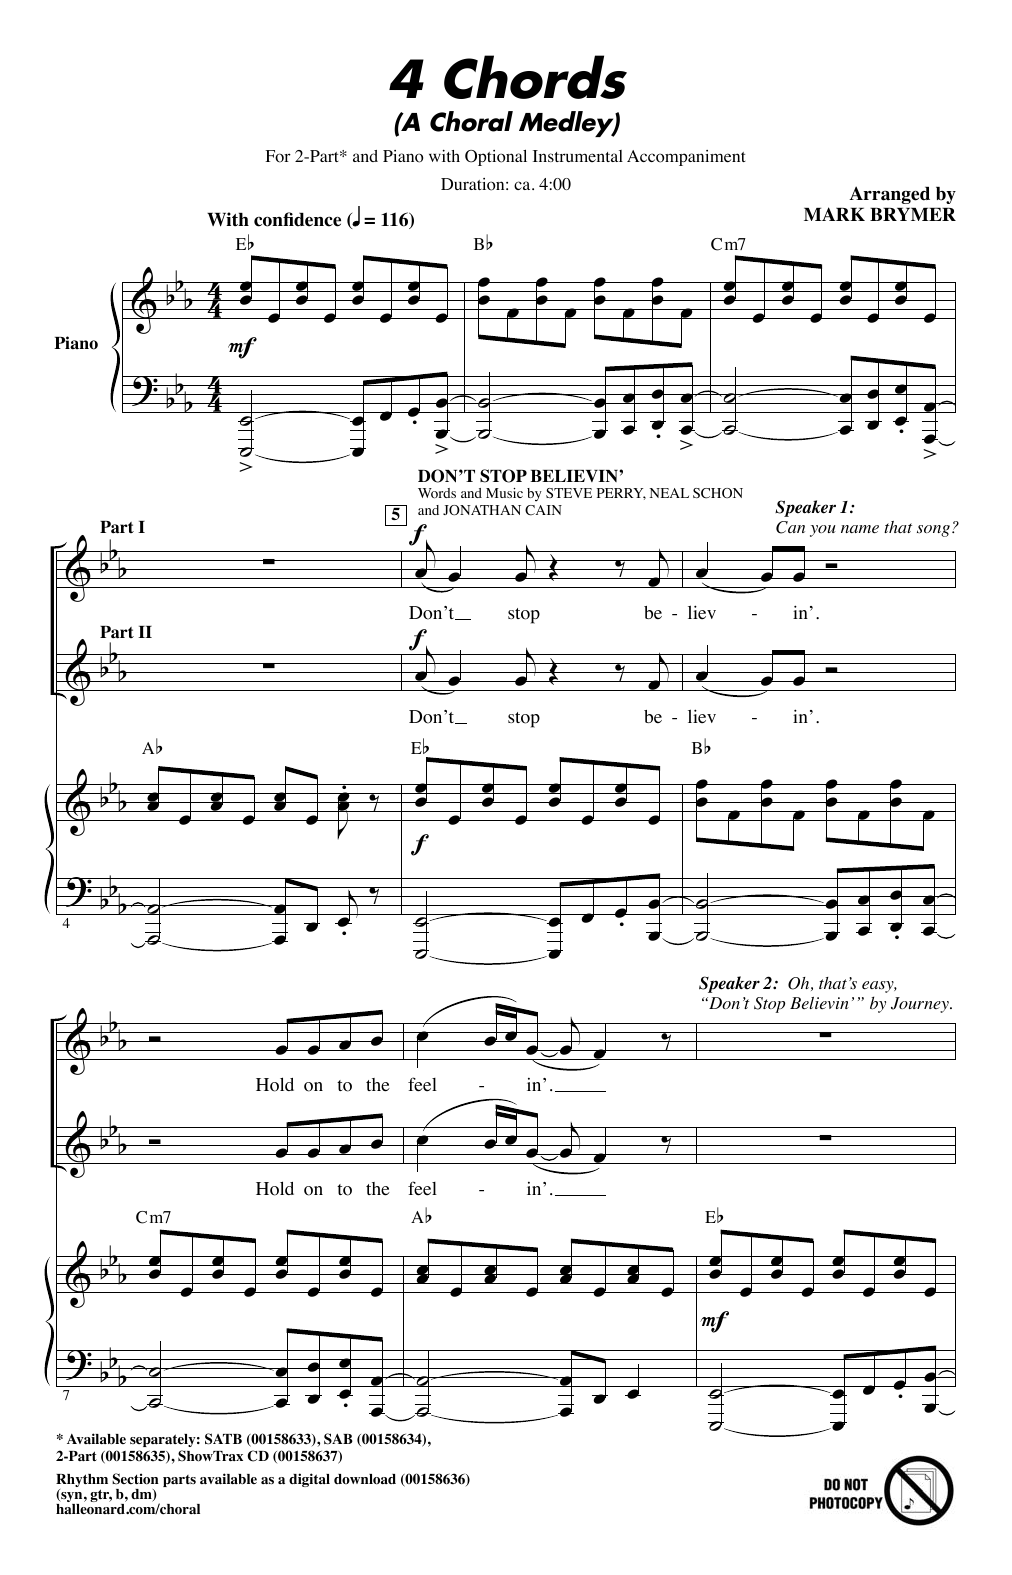 4 chords a choral medley sheet music direct sheet preview hexwebz Gallery